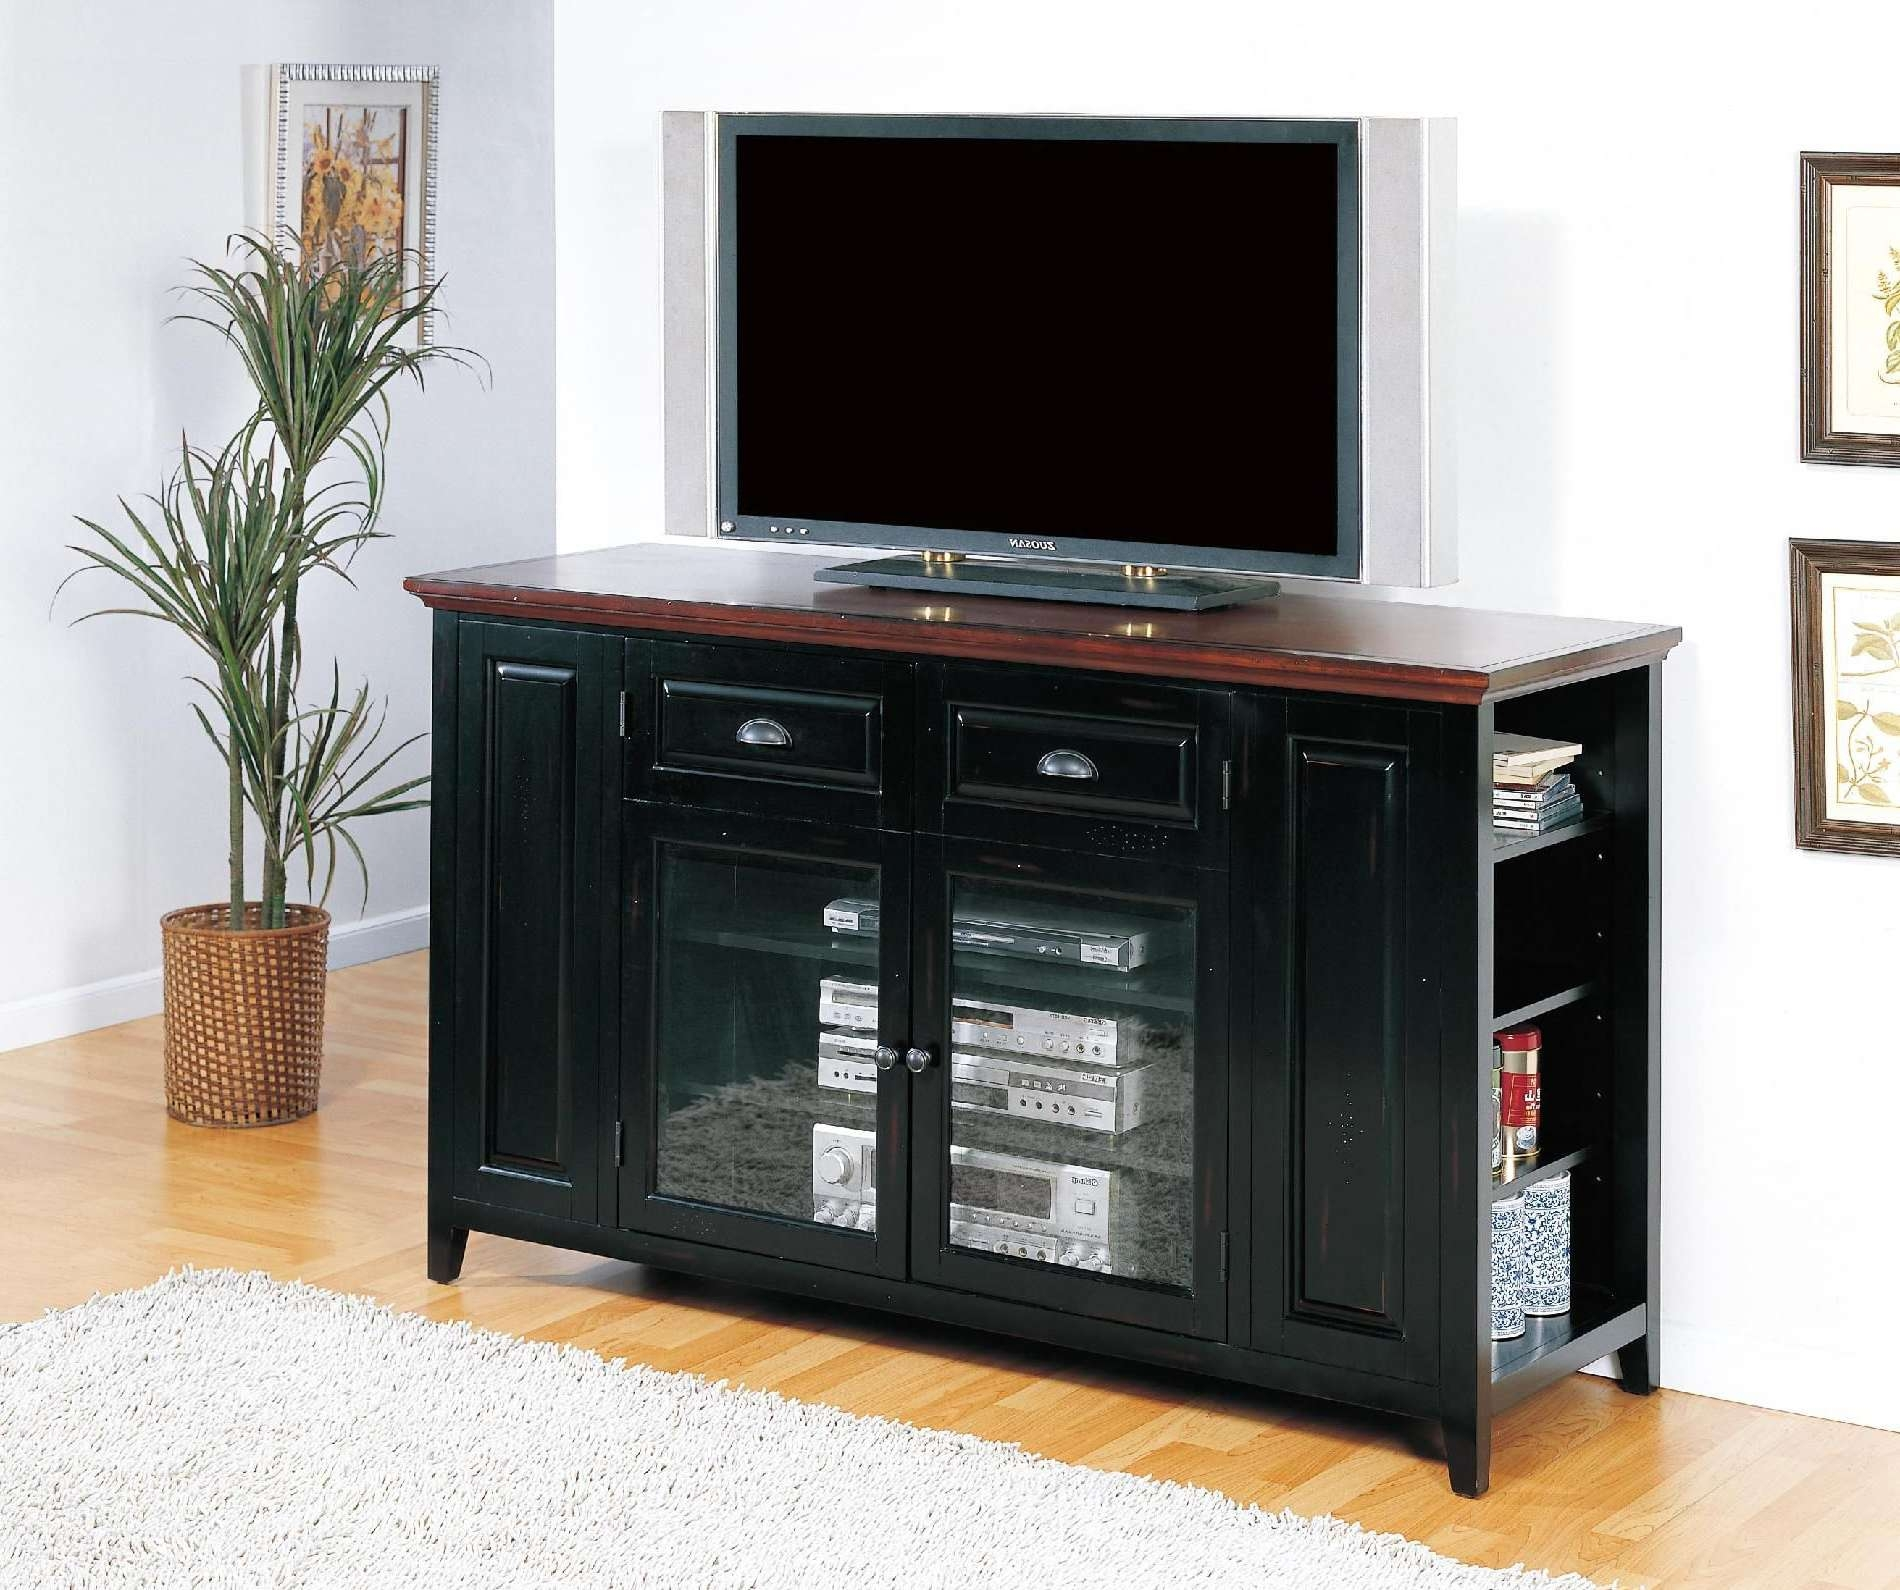 Retro Black Oak Wood Tv Stand With Glass Doors Of Tall Tv Stands Pertaining To Oak Tv Stands With Glass Doors (View 12 of 15)